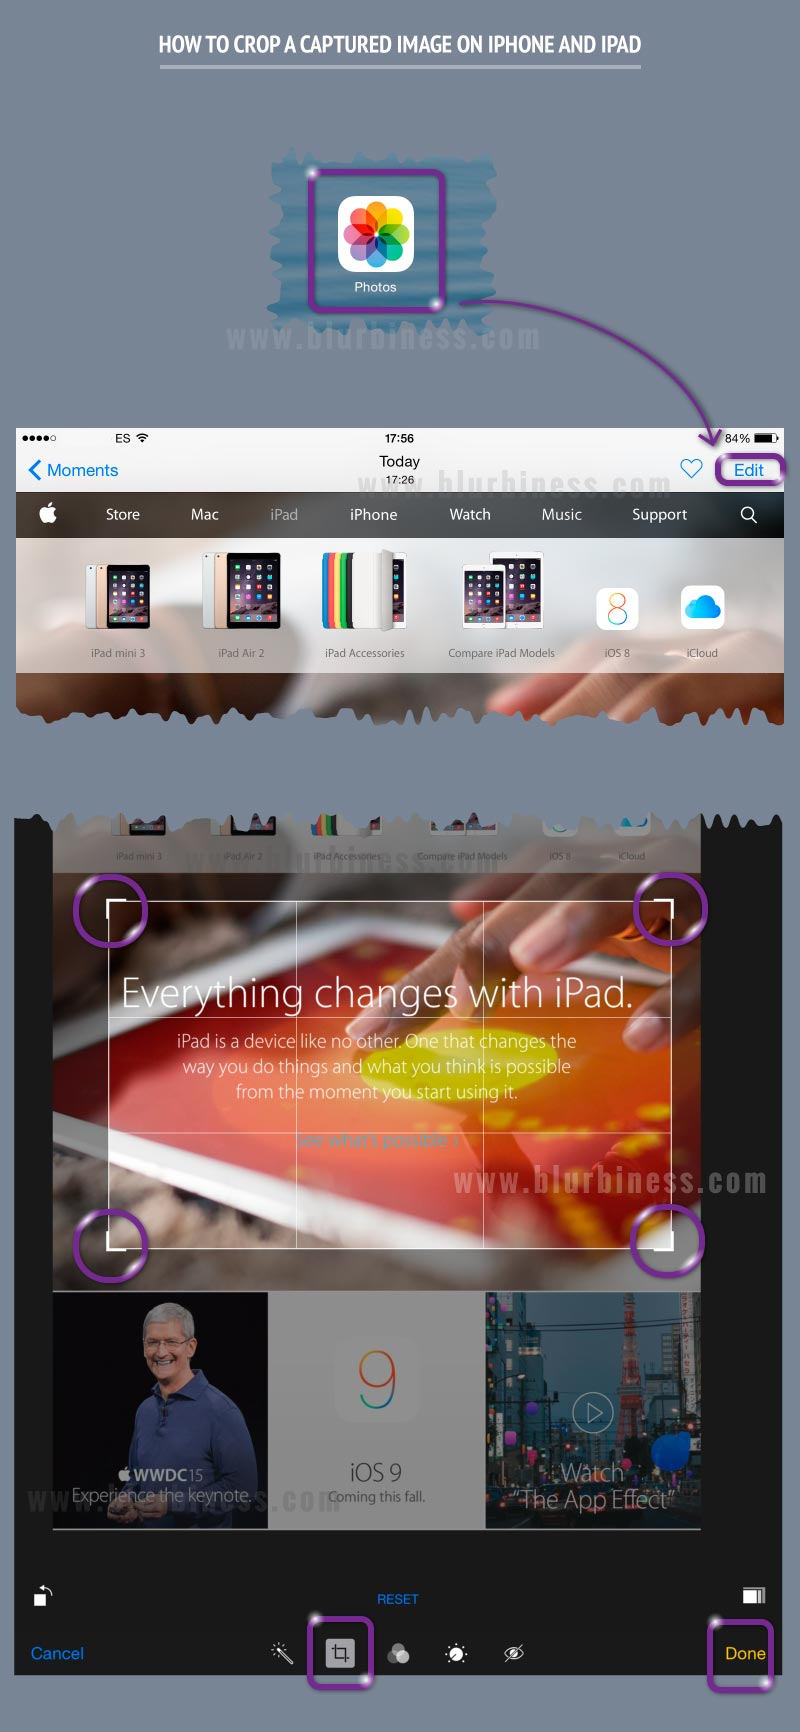 How to crop a captured image on iPhone and iPad